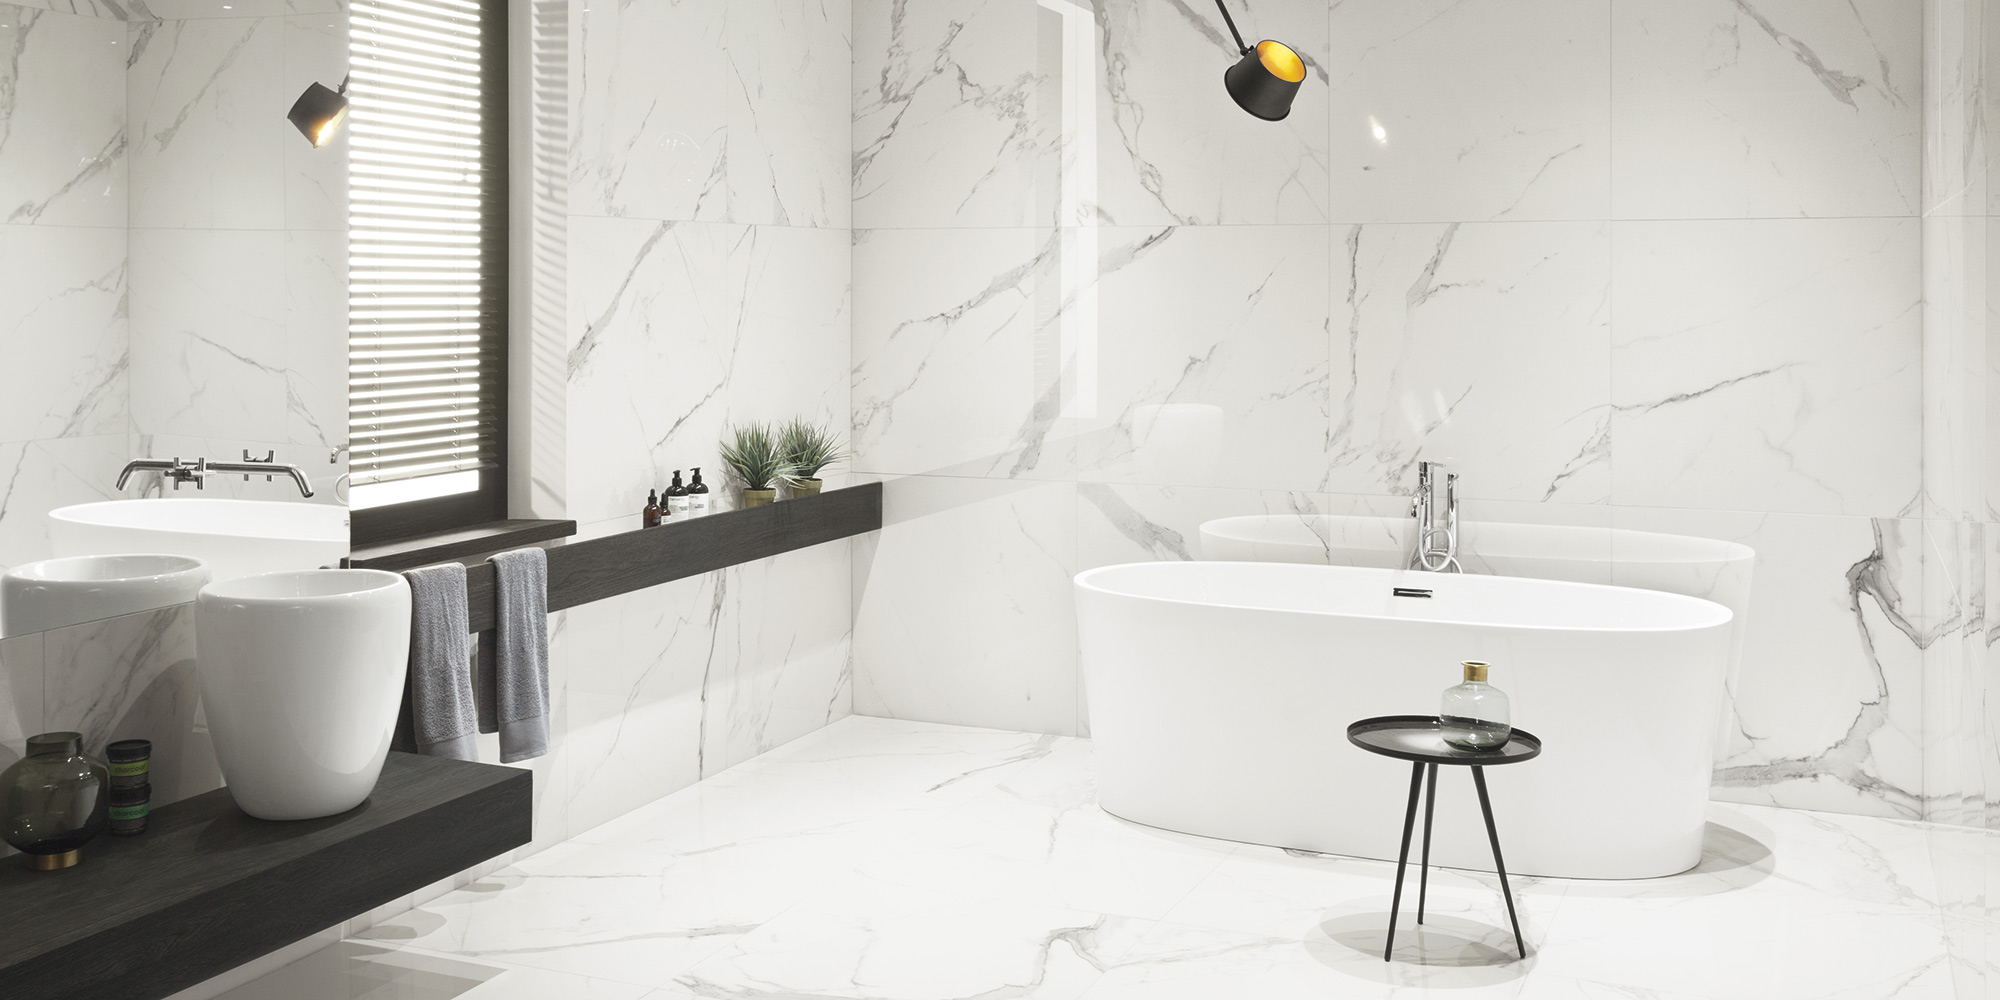 The most beautiful in the world marble look extra large format wall tiles for bathrooms available only in National Tile Ireland.